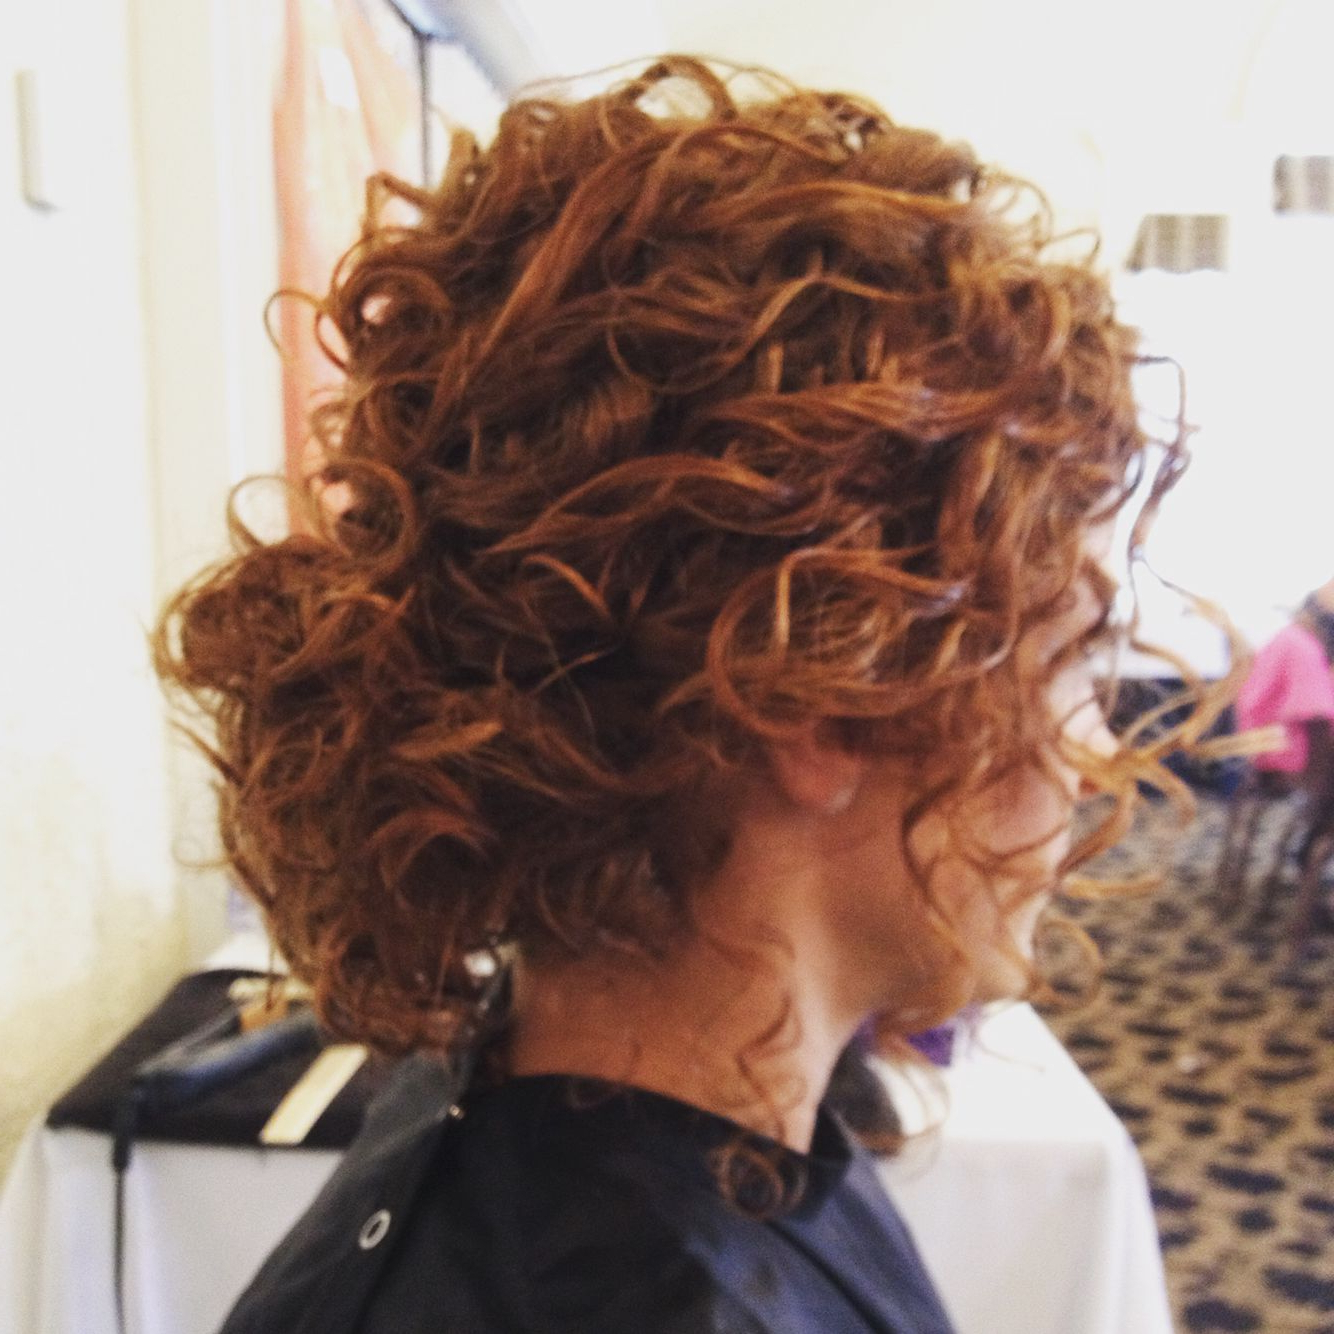 Naturally Curly Hair Low Bun Updo | Hair In 2018 | Pinterest | Curly throughout Casual Scrunched Hairstyles For Short Curly Hair